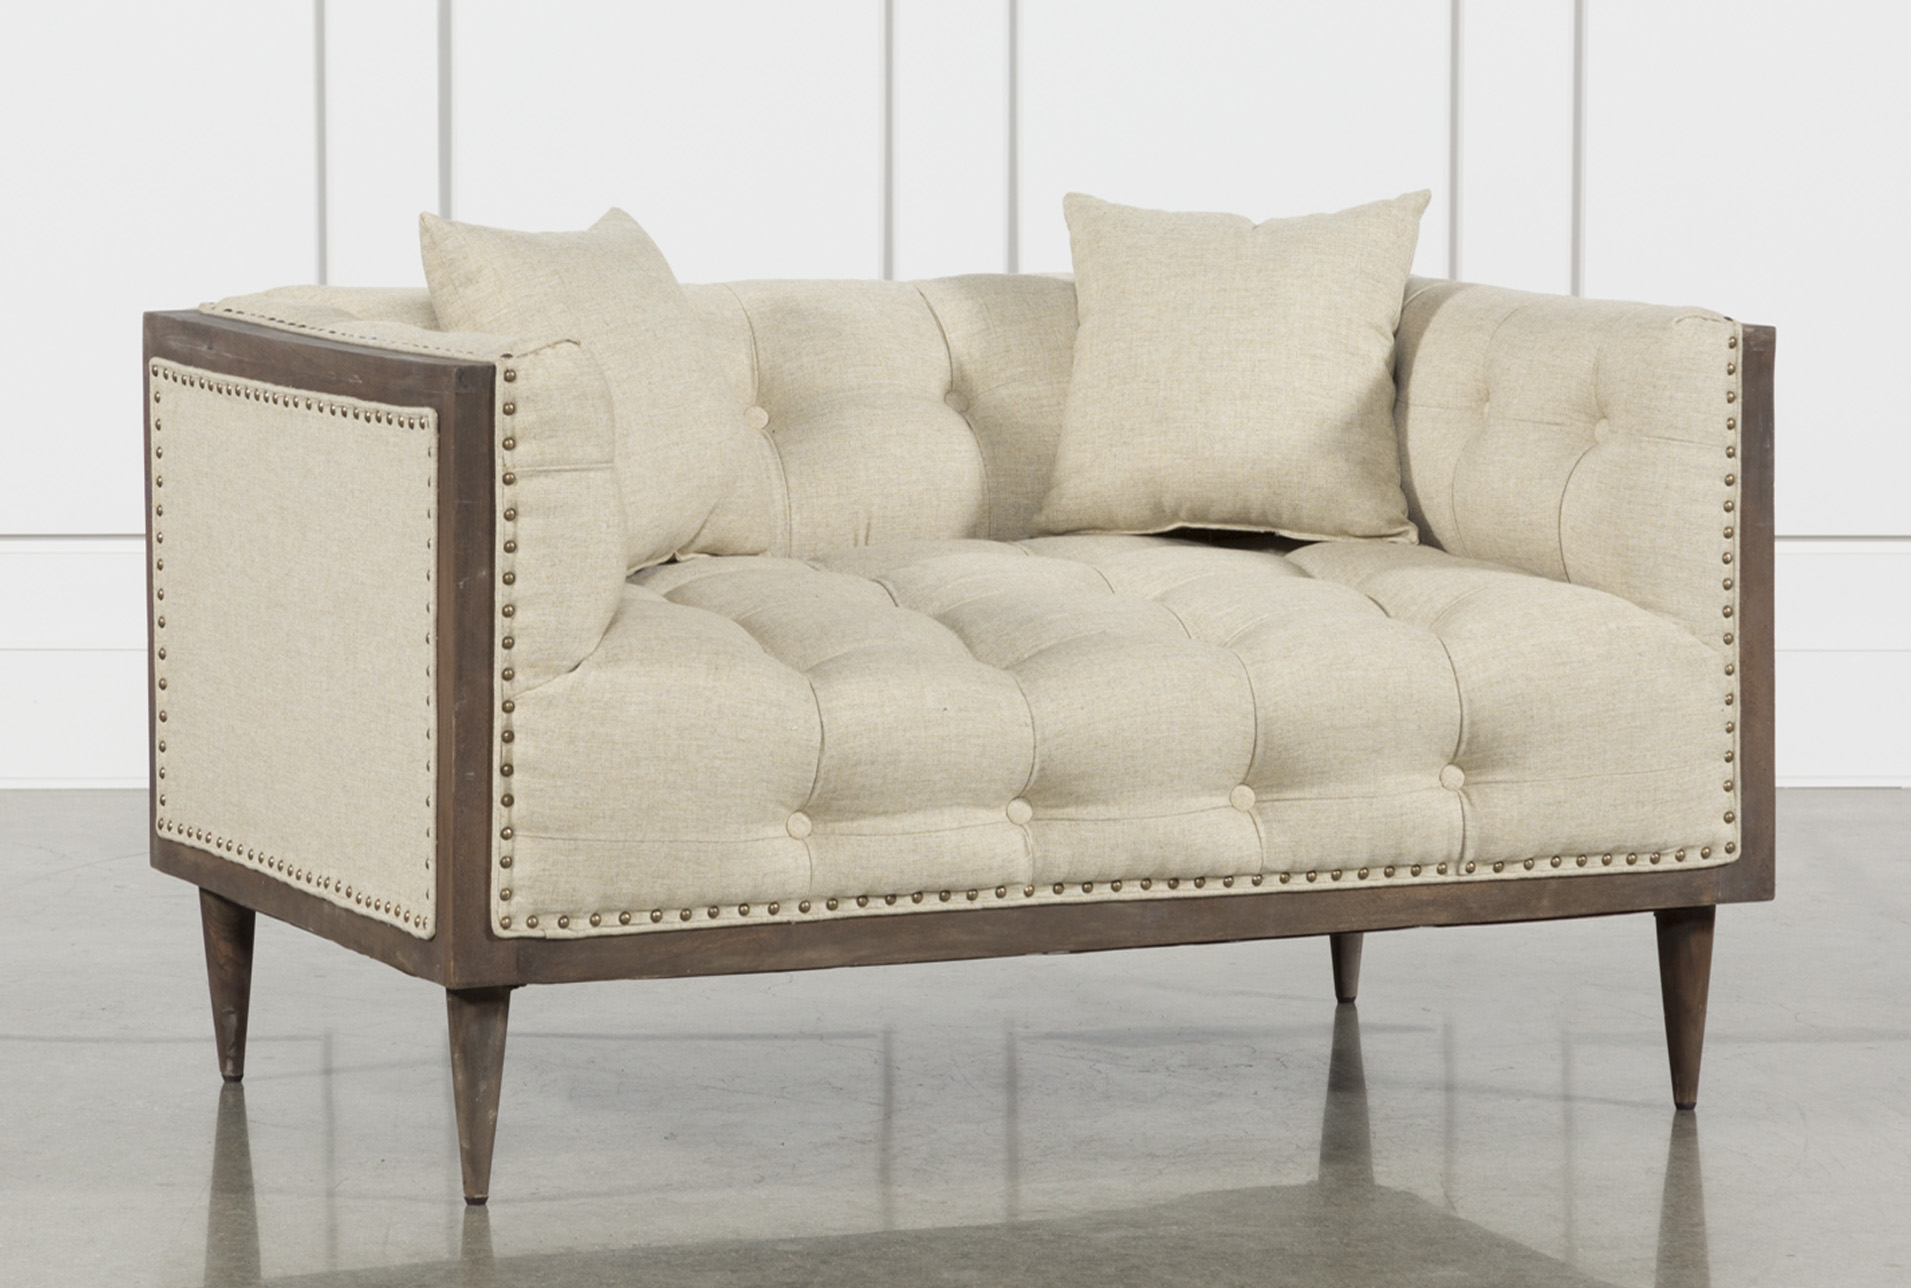 Ordinaire Oversized Tufted Chair Beige   360 Elements